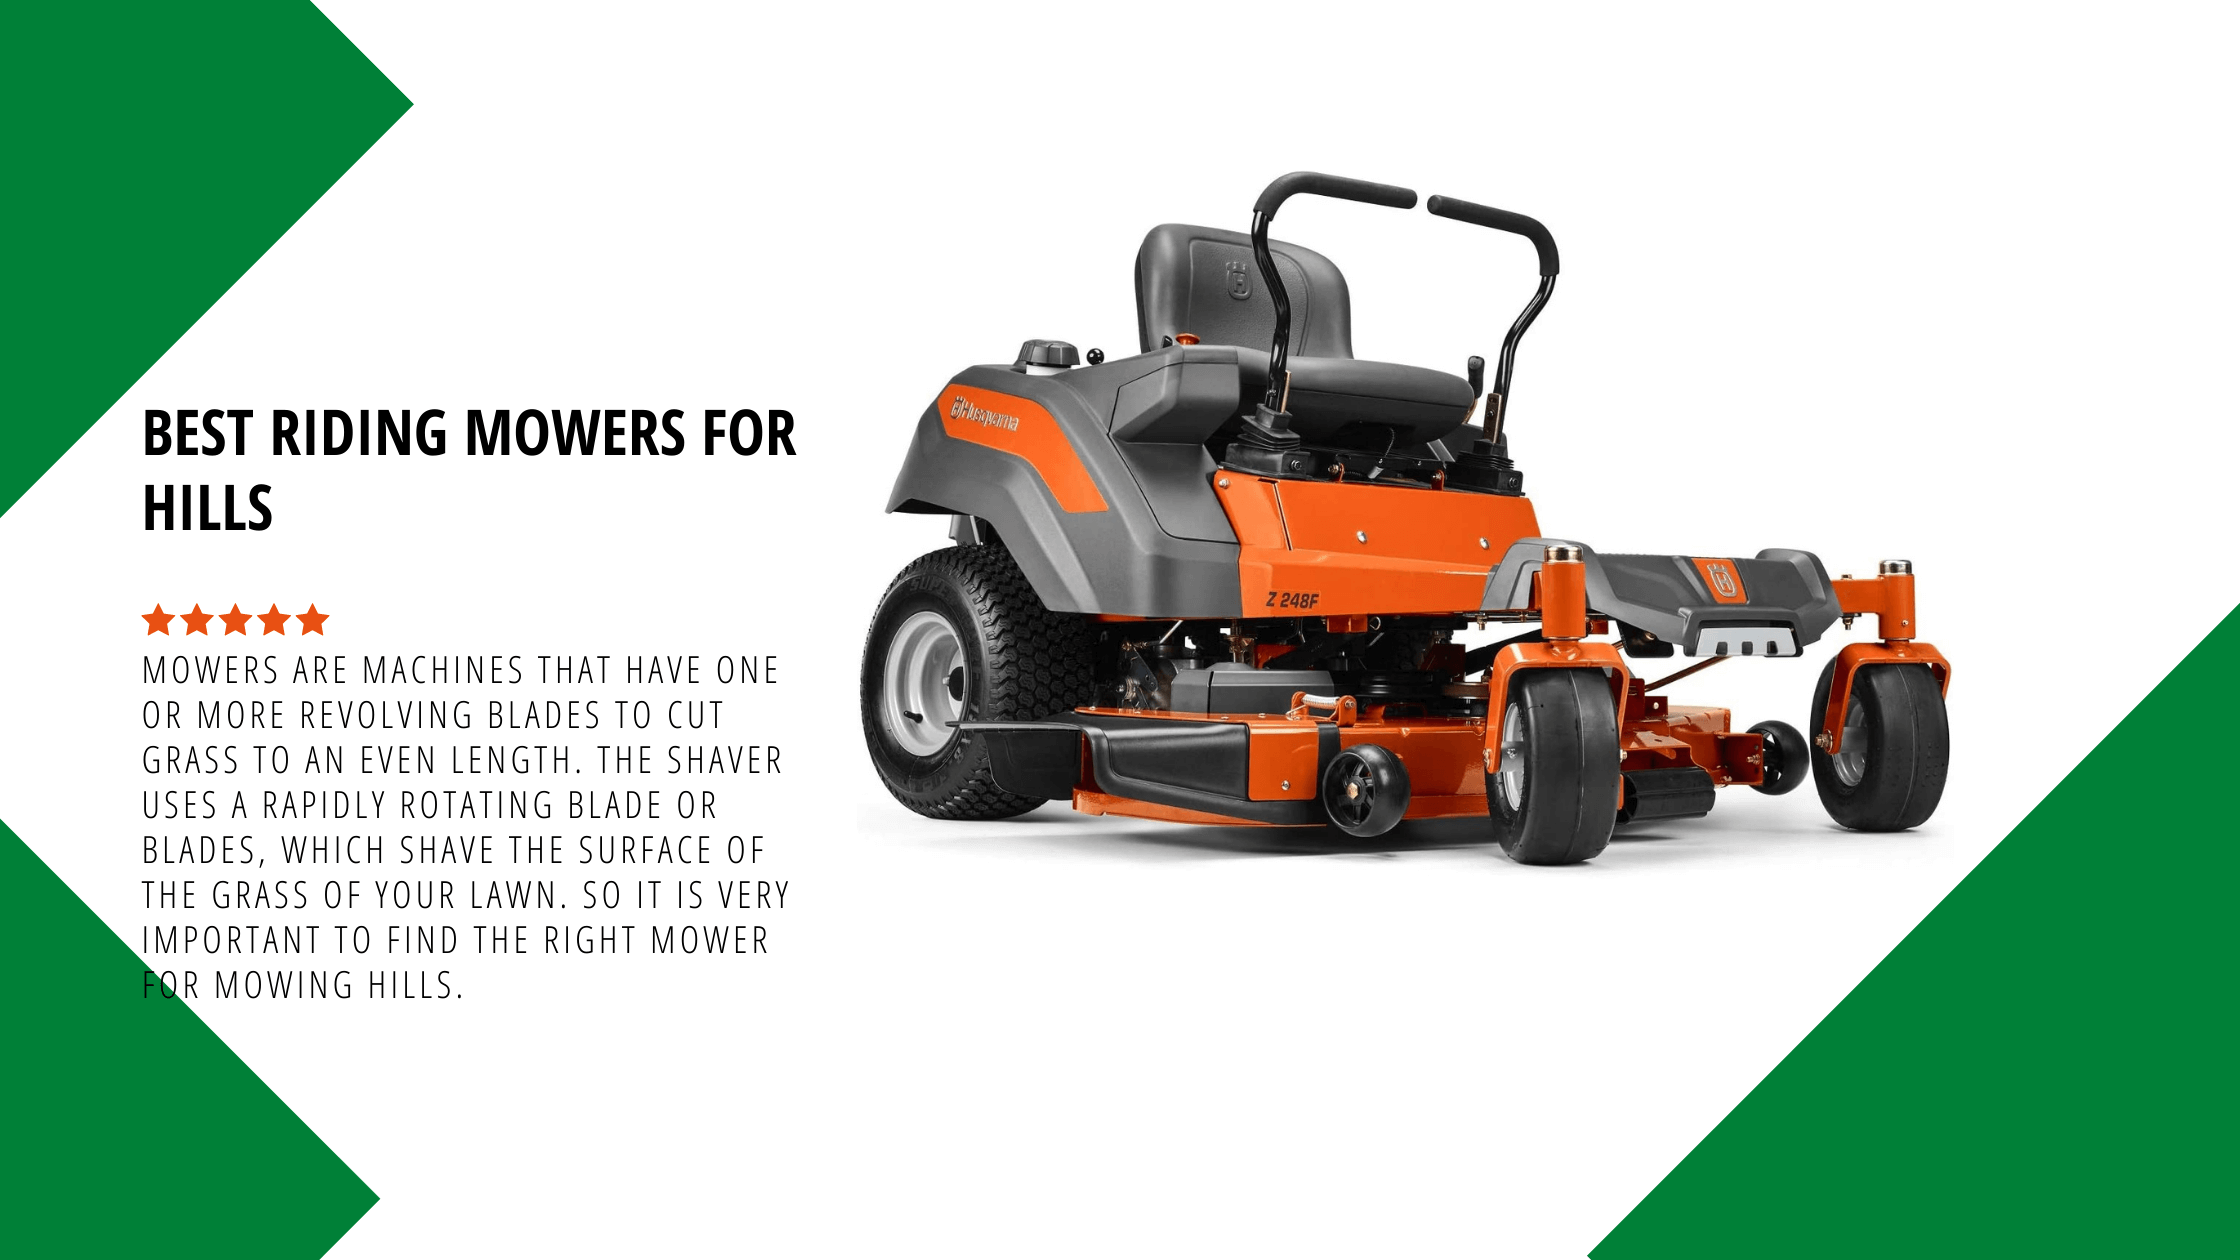 Best Riding Mowers for Hills 2021: Buyers Guide